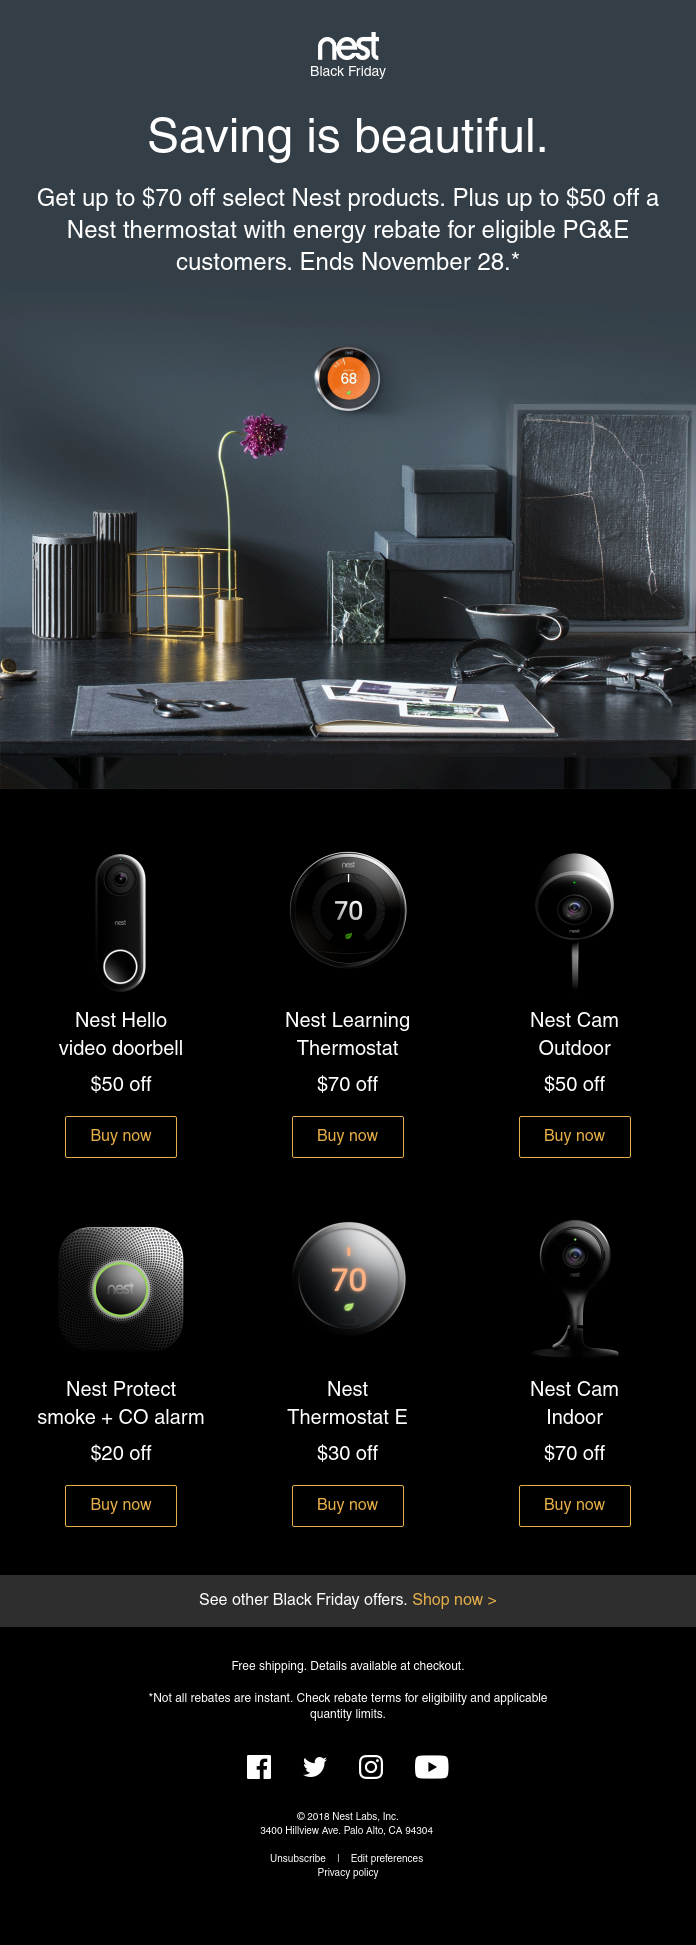 Black Friday email campaign from Nest